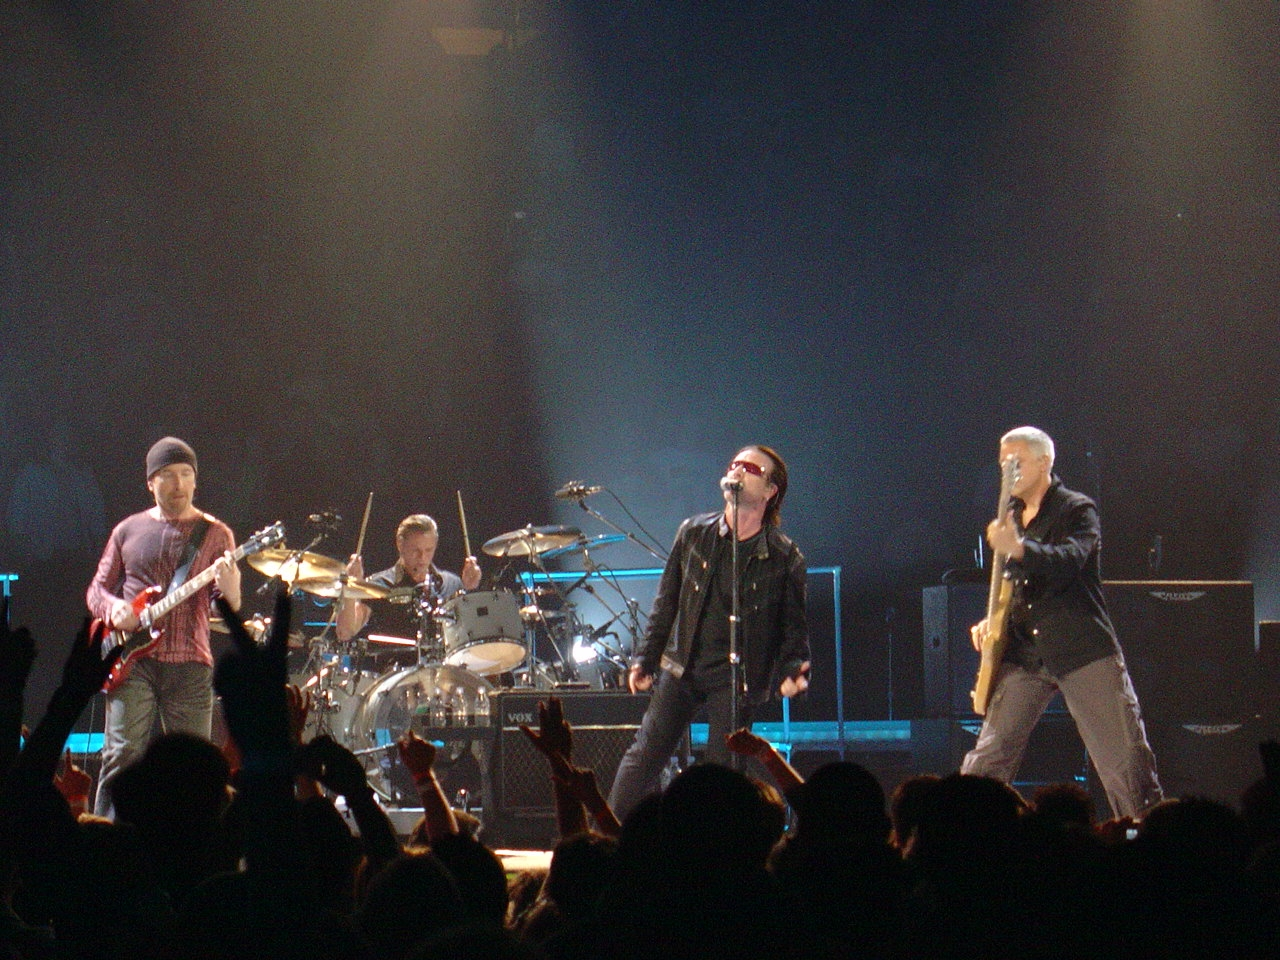 Faith, hope and U2: the language of love in the music of U2